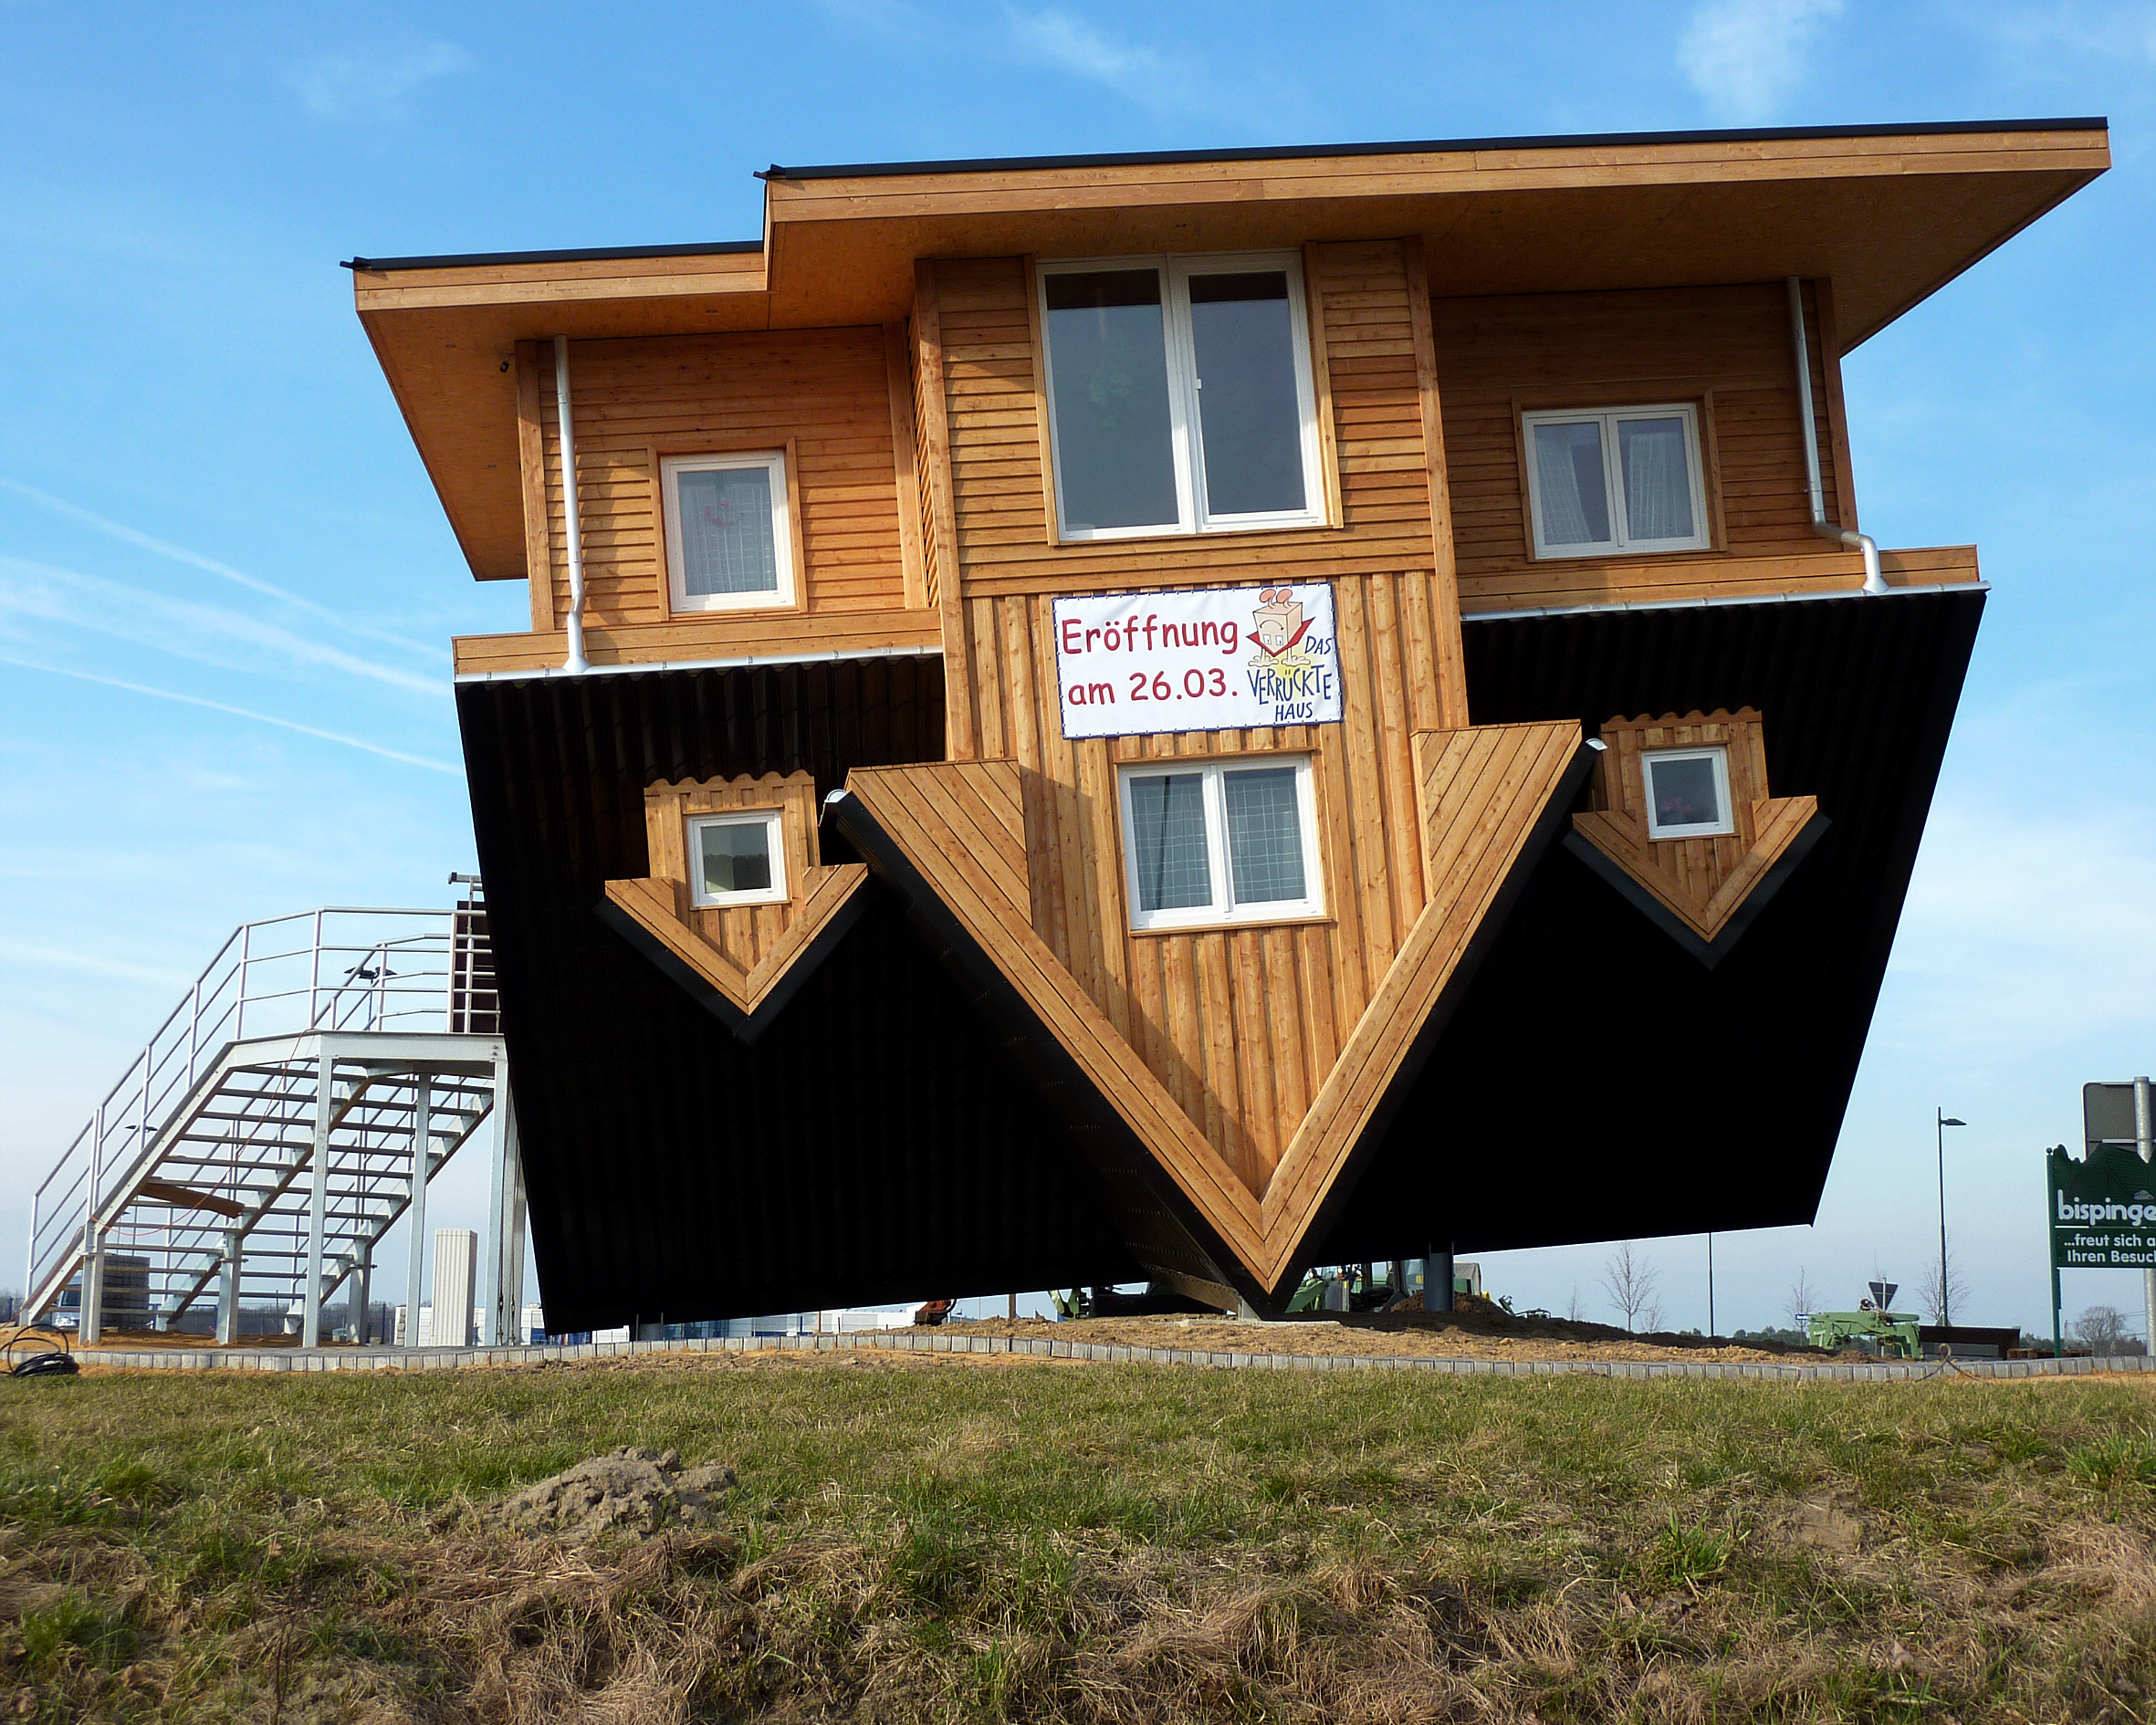 The amazing house in germany that is upside down Home building architecture